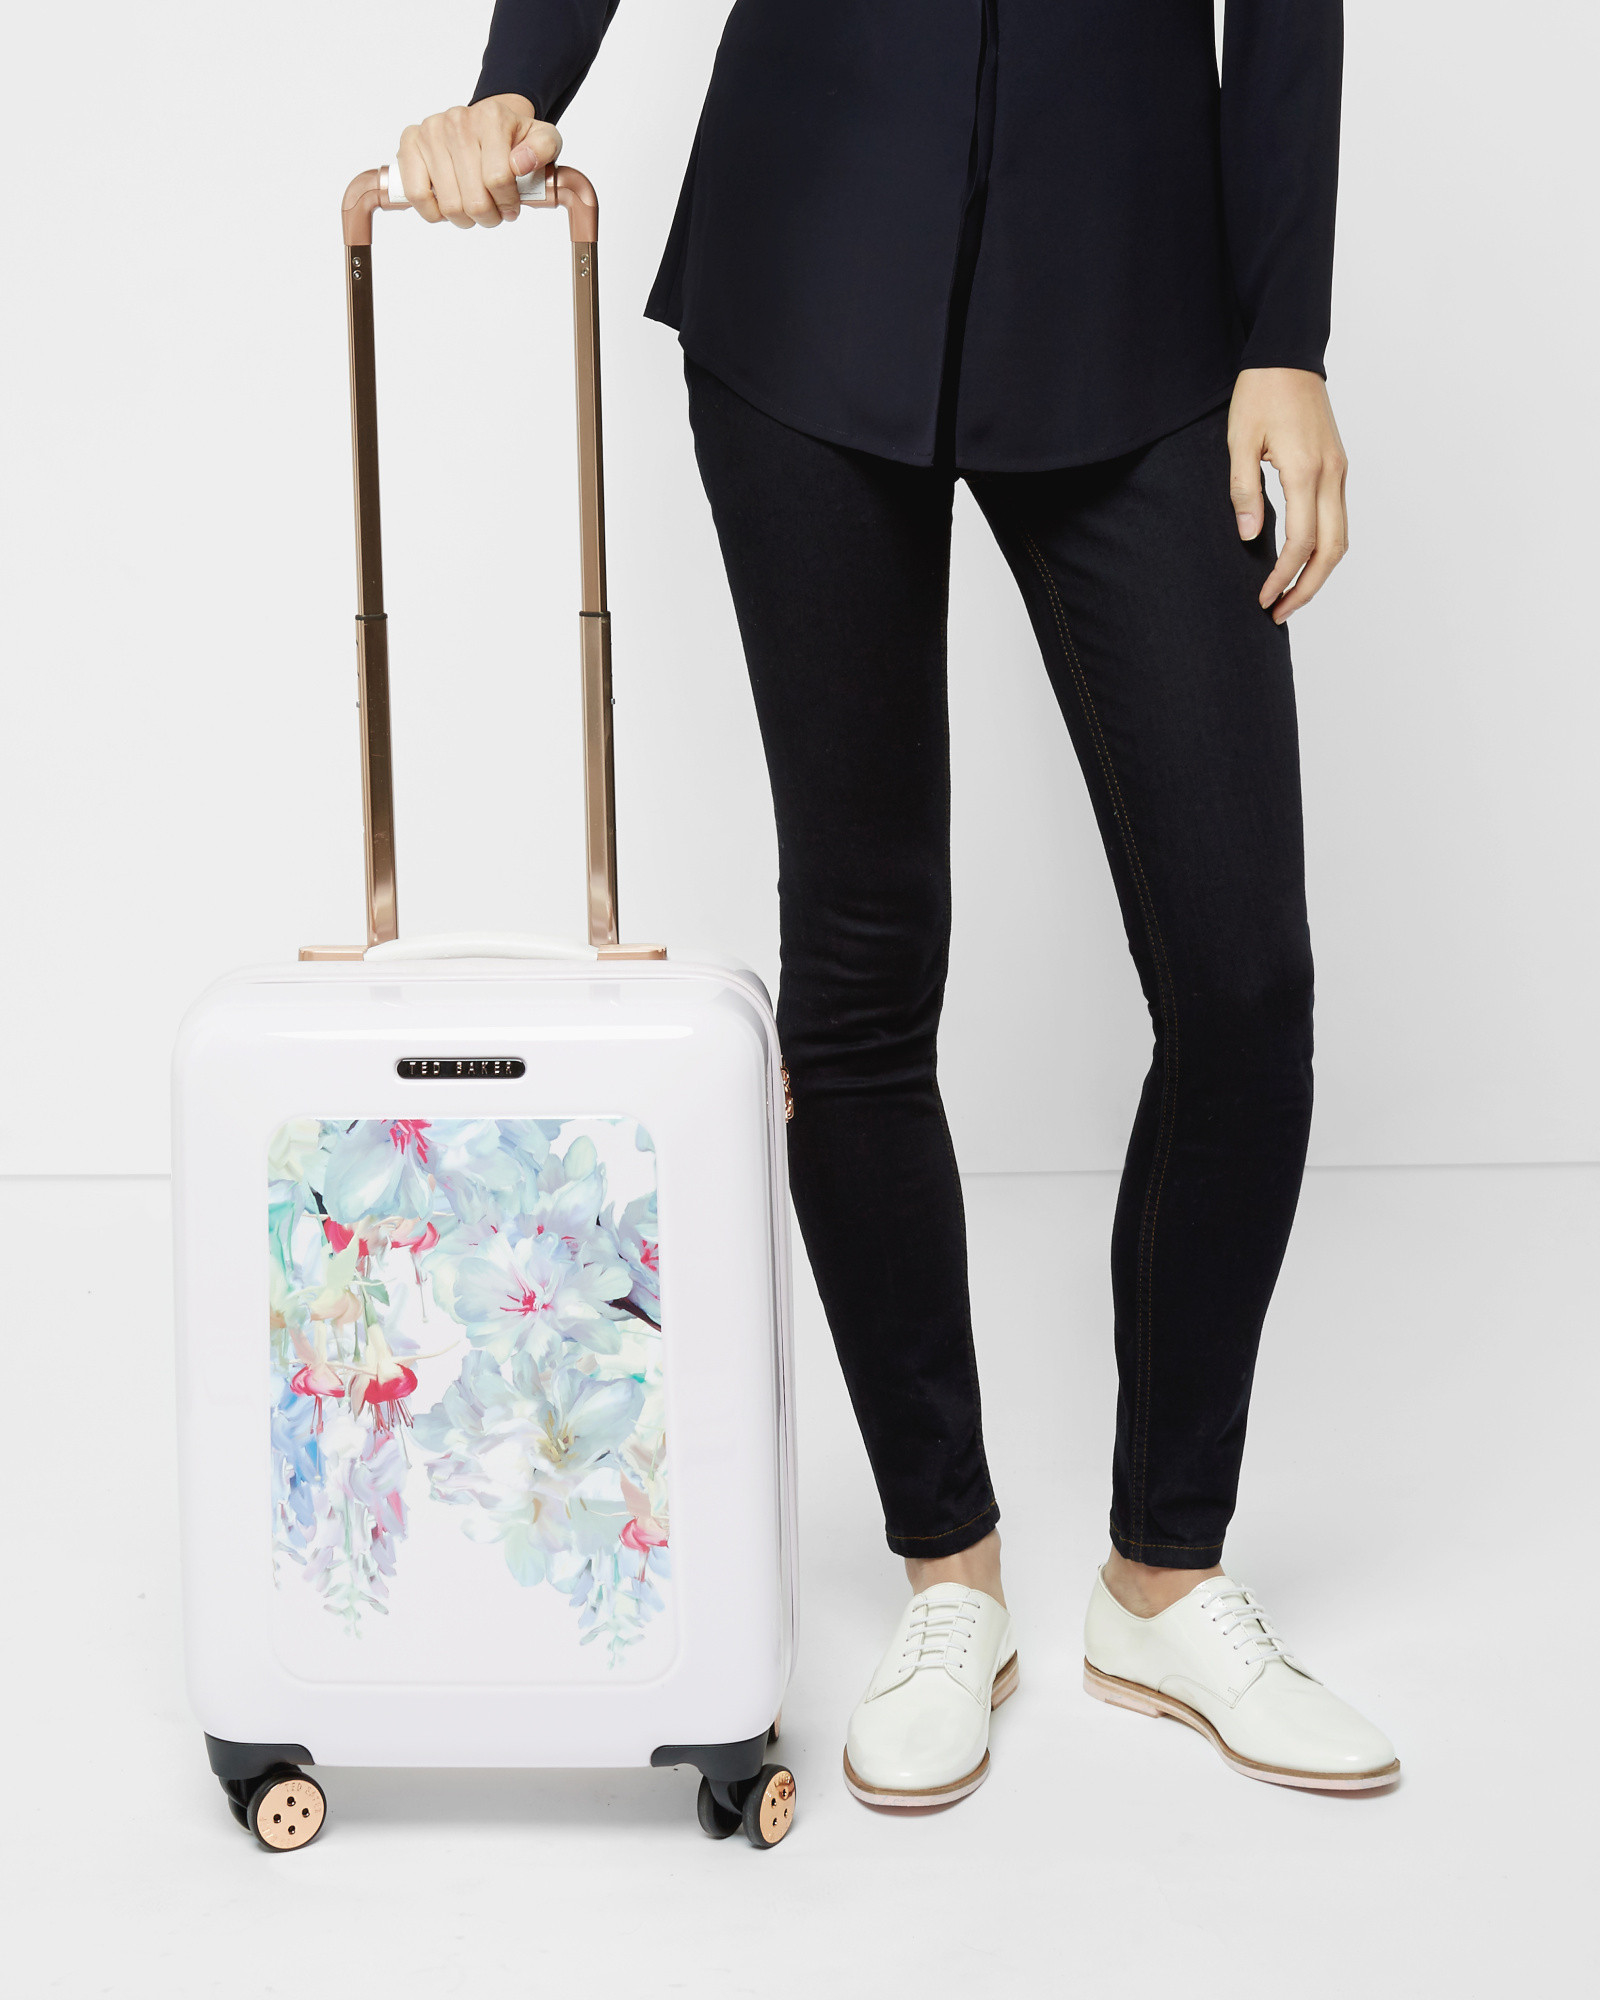 af7e2a9c1f5f3 Ted Baker Hanging Gardens Small Suitcase in Pink - Lyst